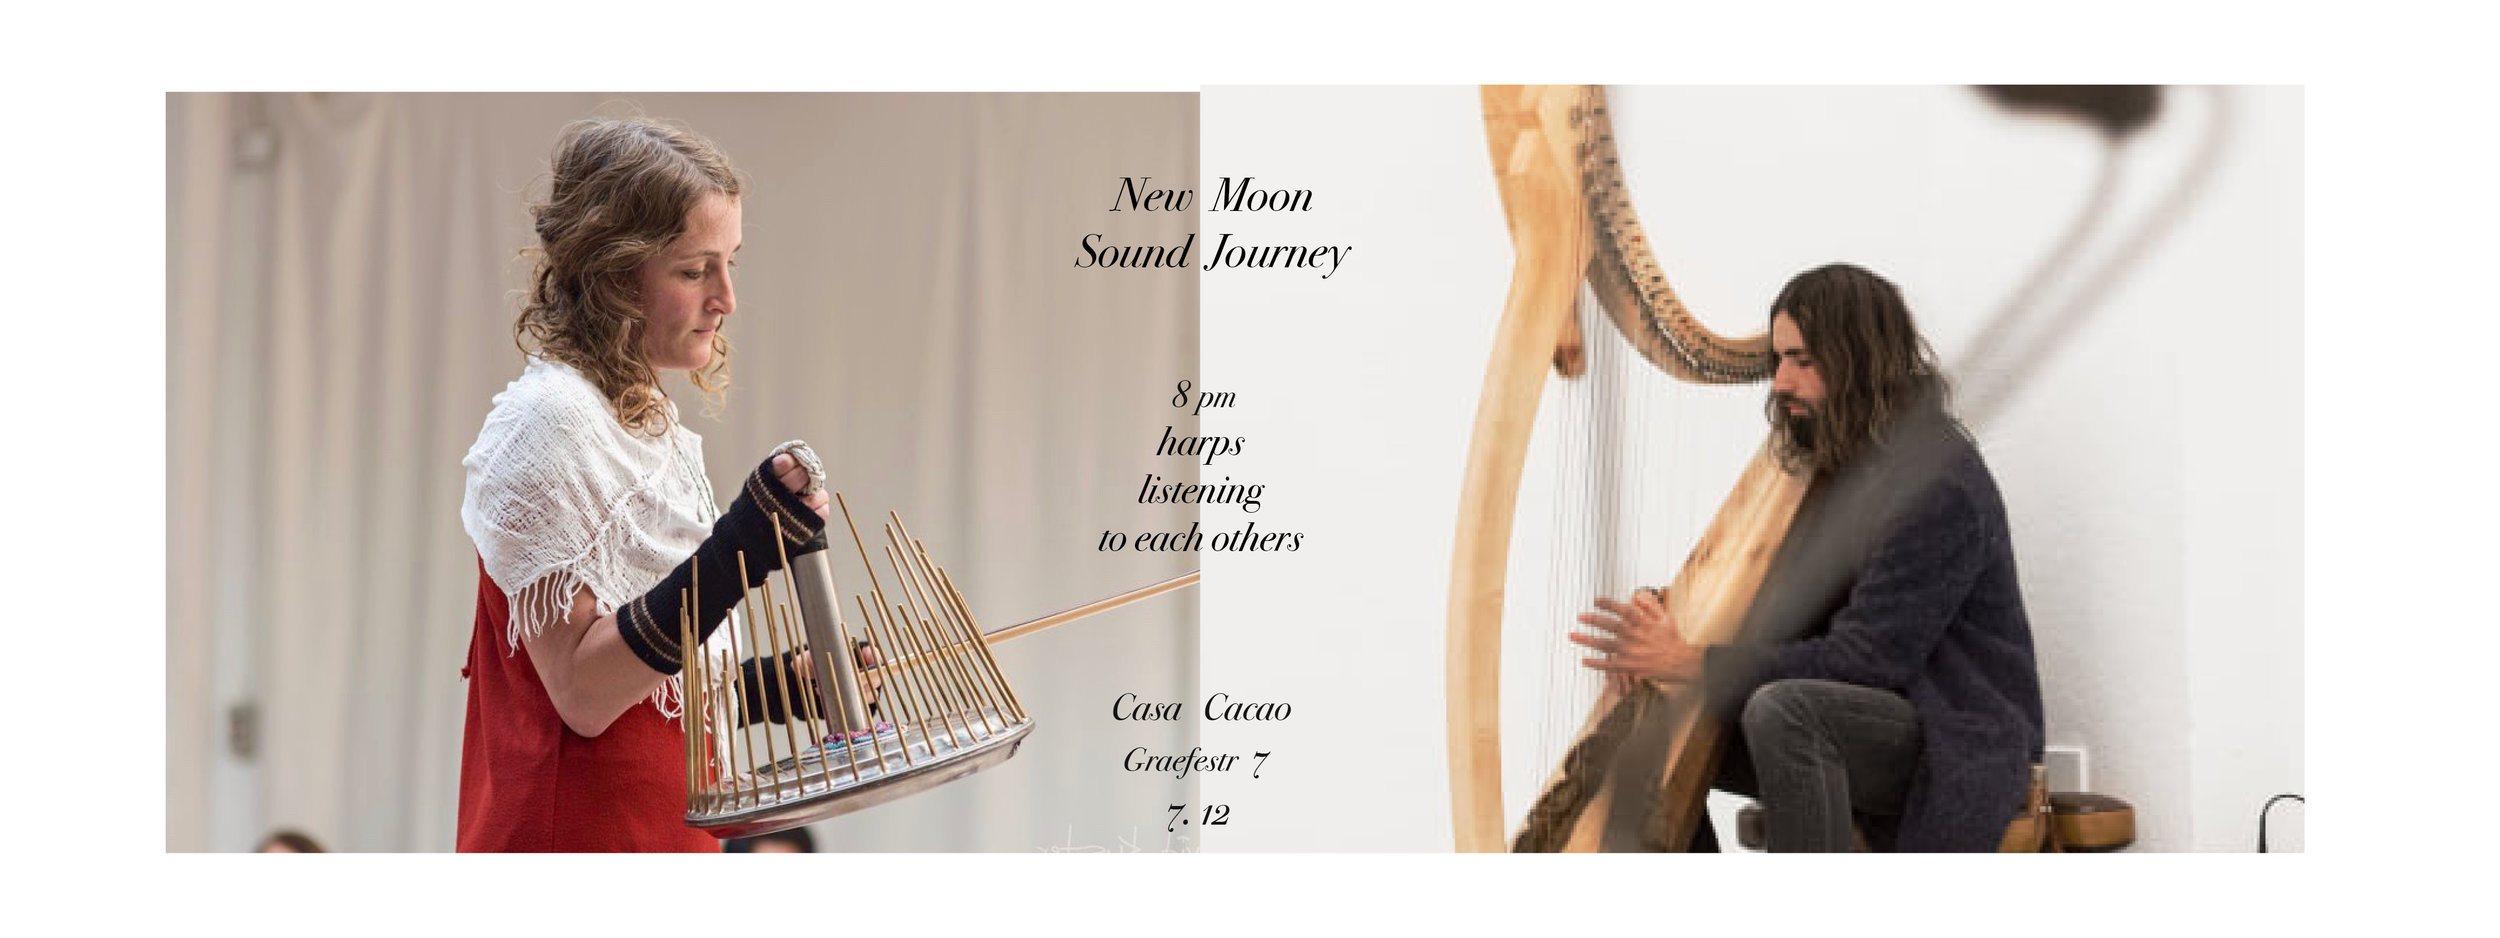 New Moon Sound Journey. Opening of season